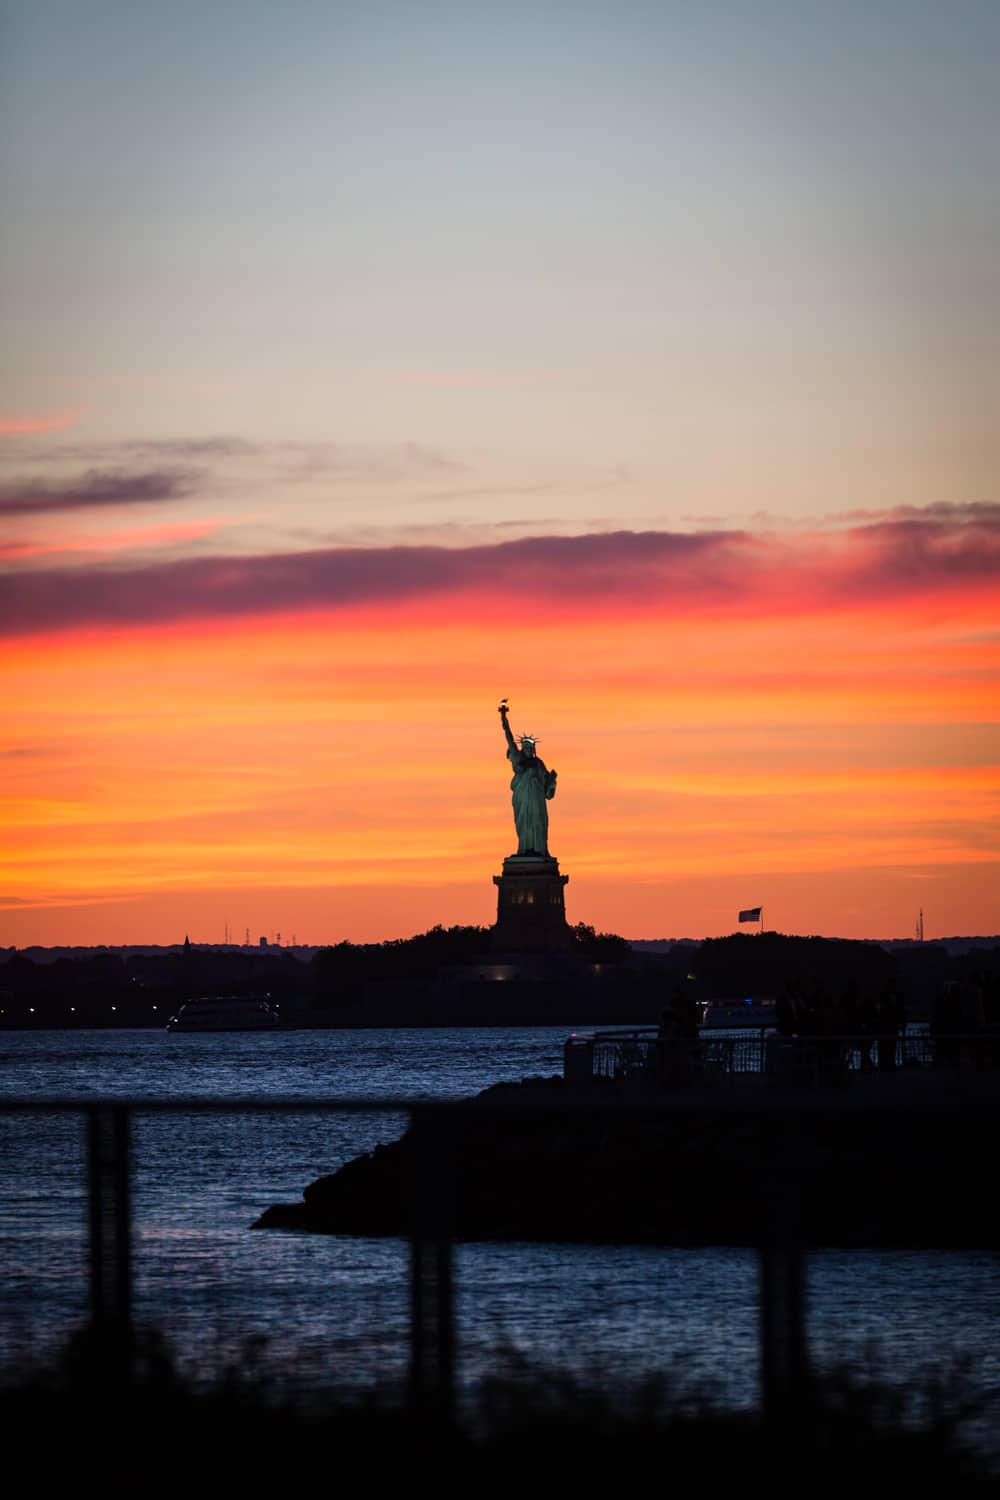 Red Hook waterfront at sunset with Statue of Liberty in background